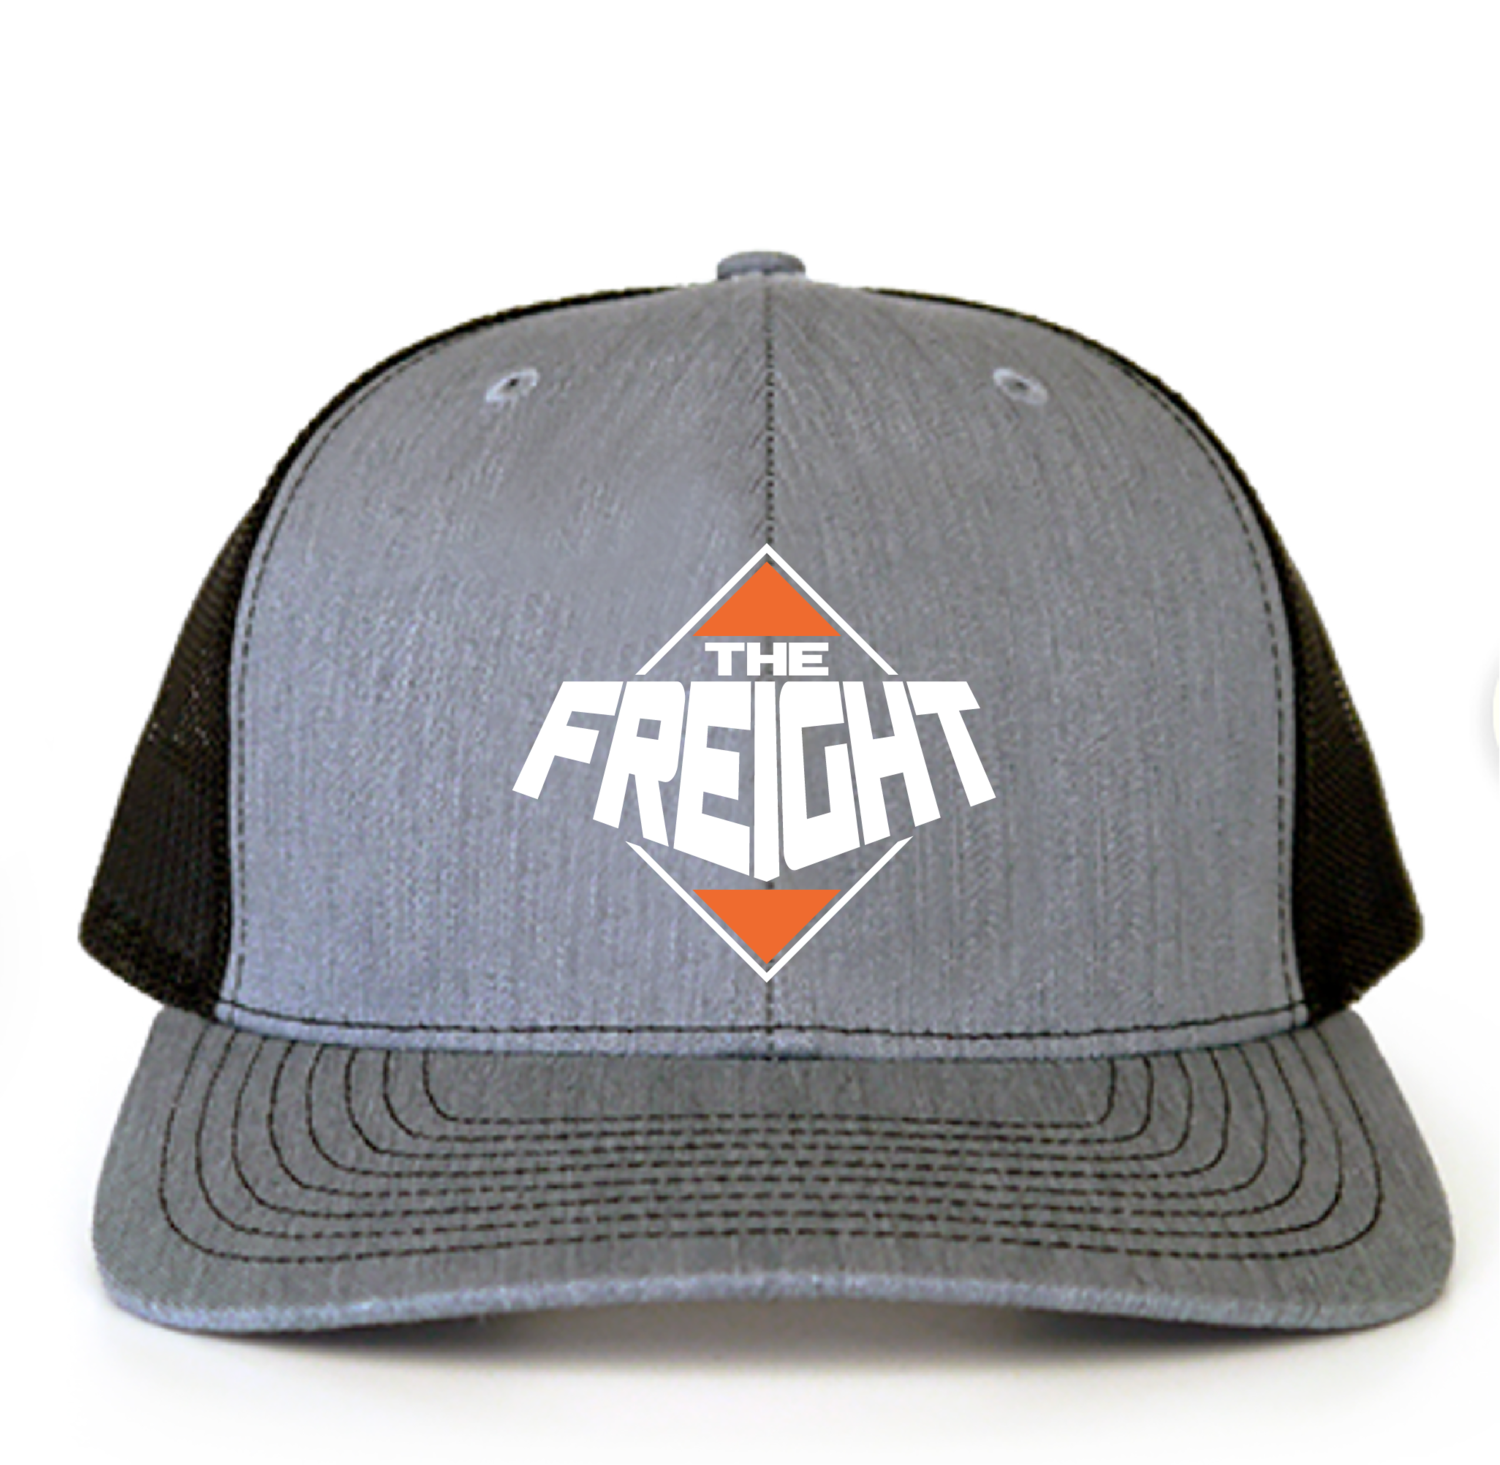 The Freight Trucker Hat